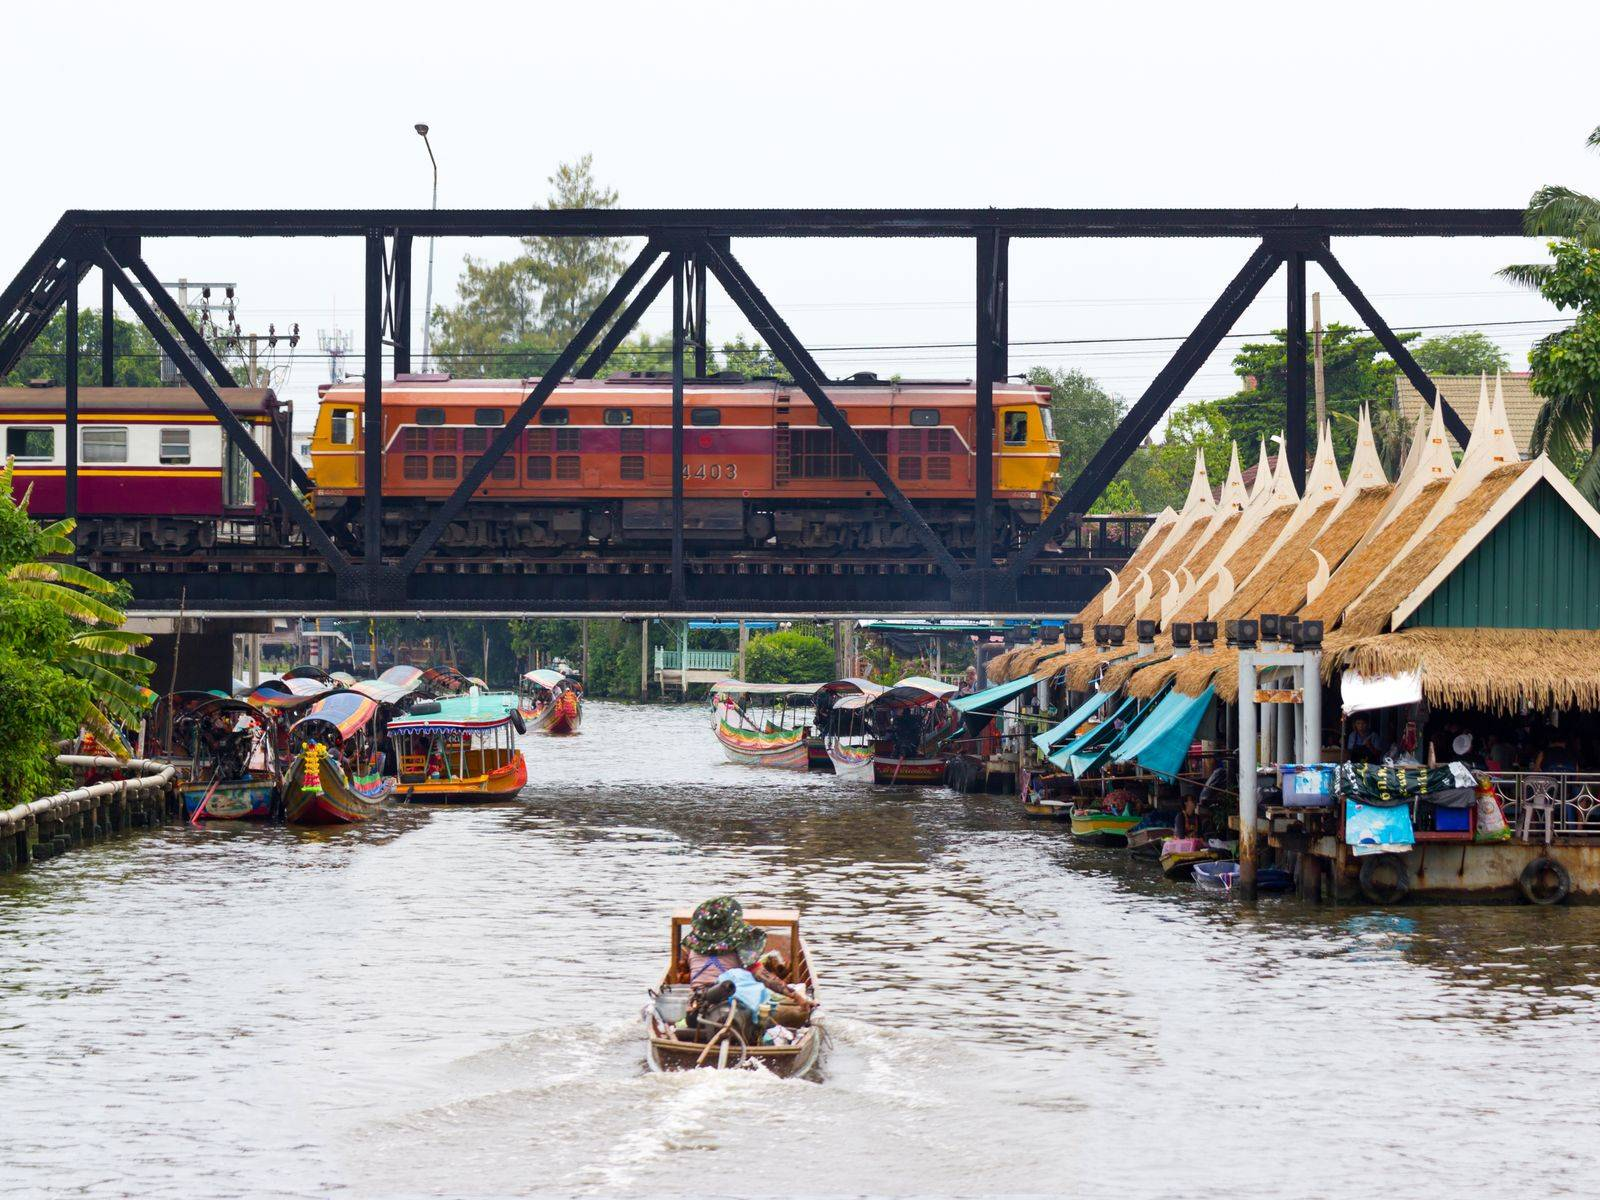 Learn Thai Fruit Carving and Explore Taling Chan Floating Market